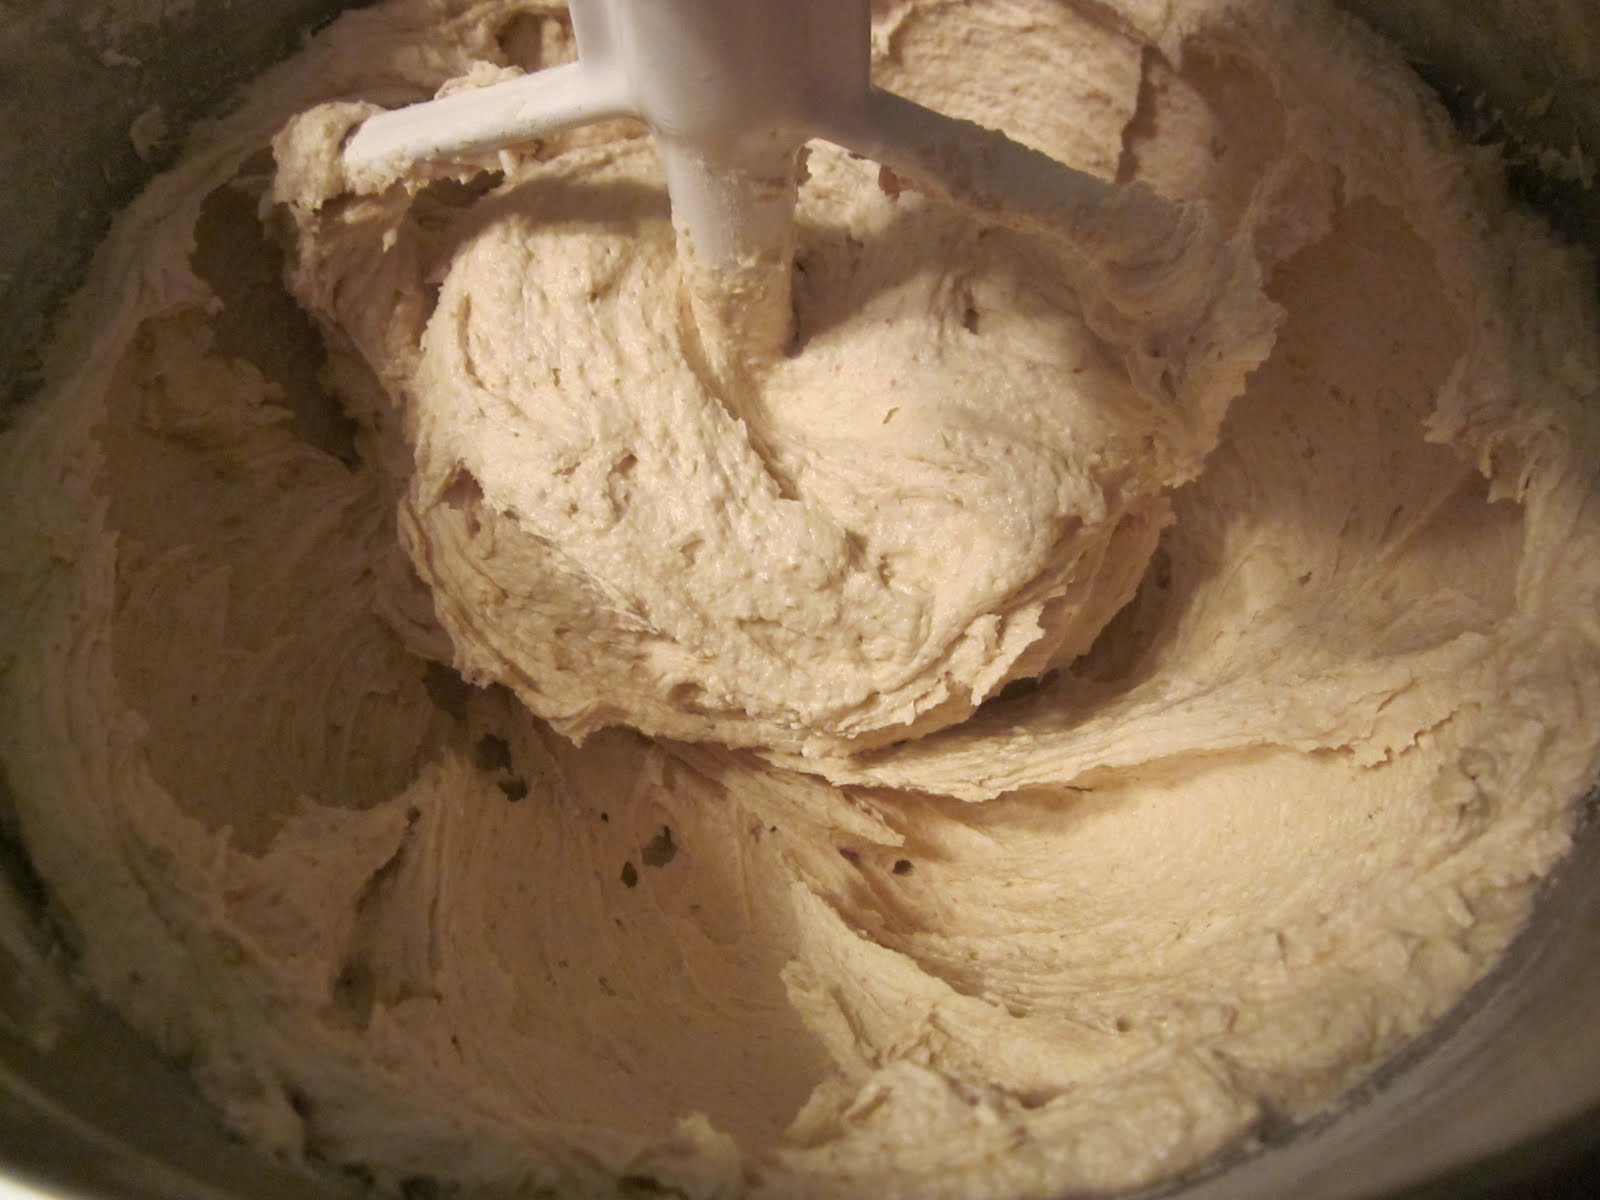 Stir up the flour in the bag or whatever container you have it in and  #9B6830